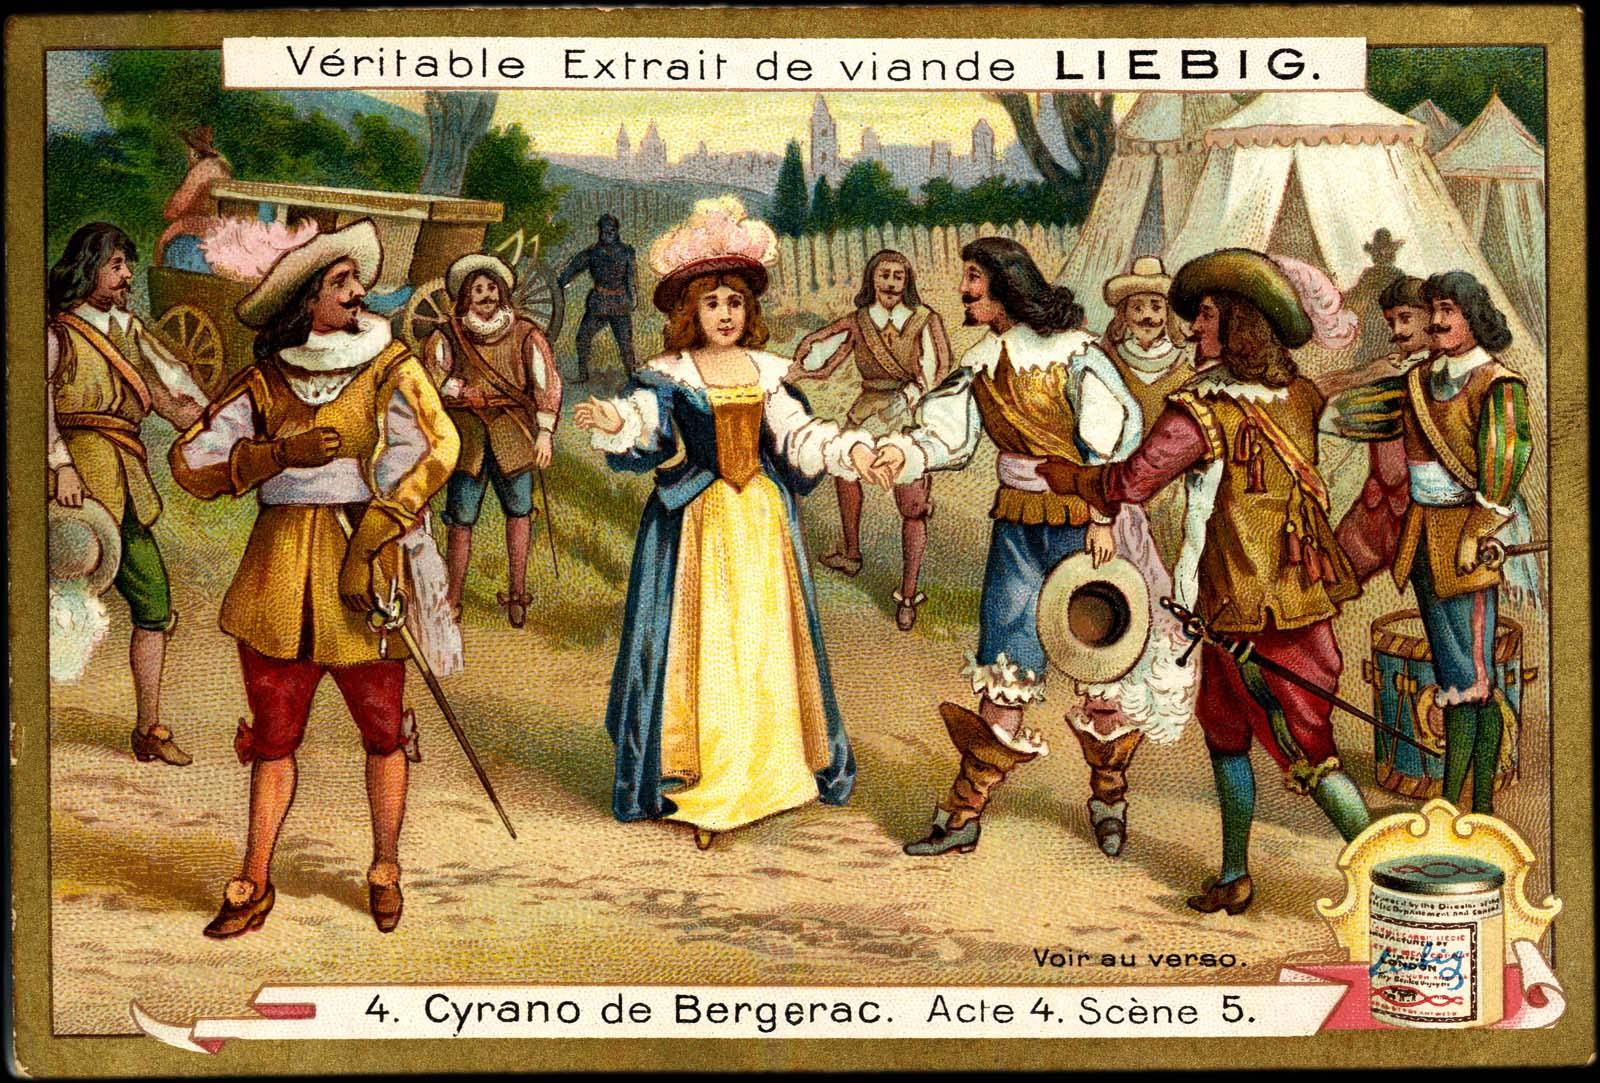 deceit and deception in the play cyrano de bergerac by edmond rostand Cyrano de bergerac study guide contains a biography of edmond rostand,   roxane herself does not lie or openly deceive, but her shallowness allows her to  be easily deceived  rostand's play is thus very moralistic.